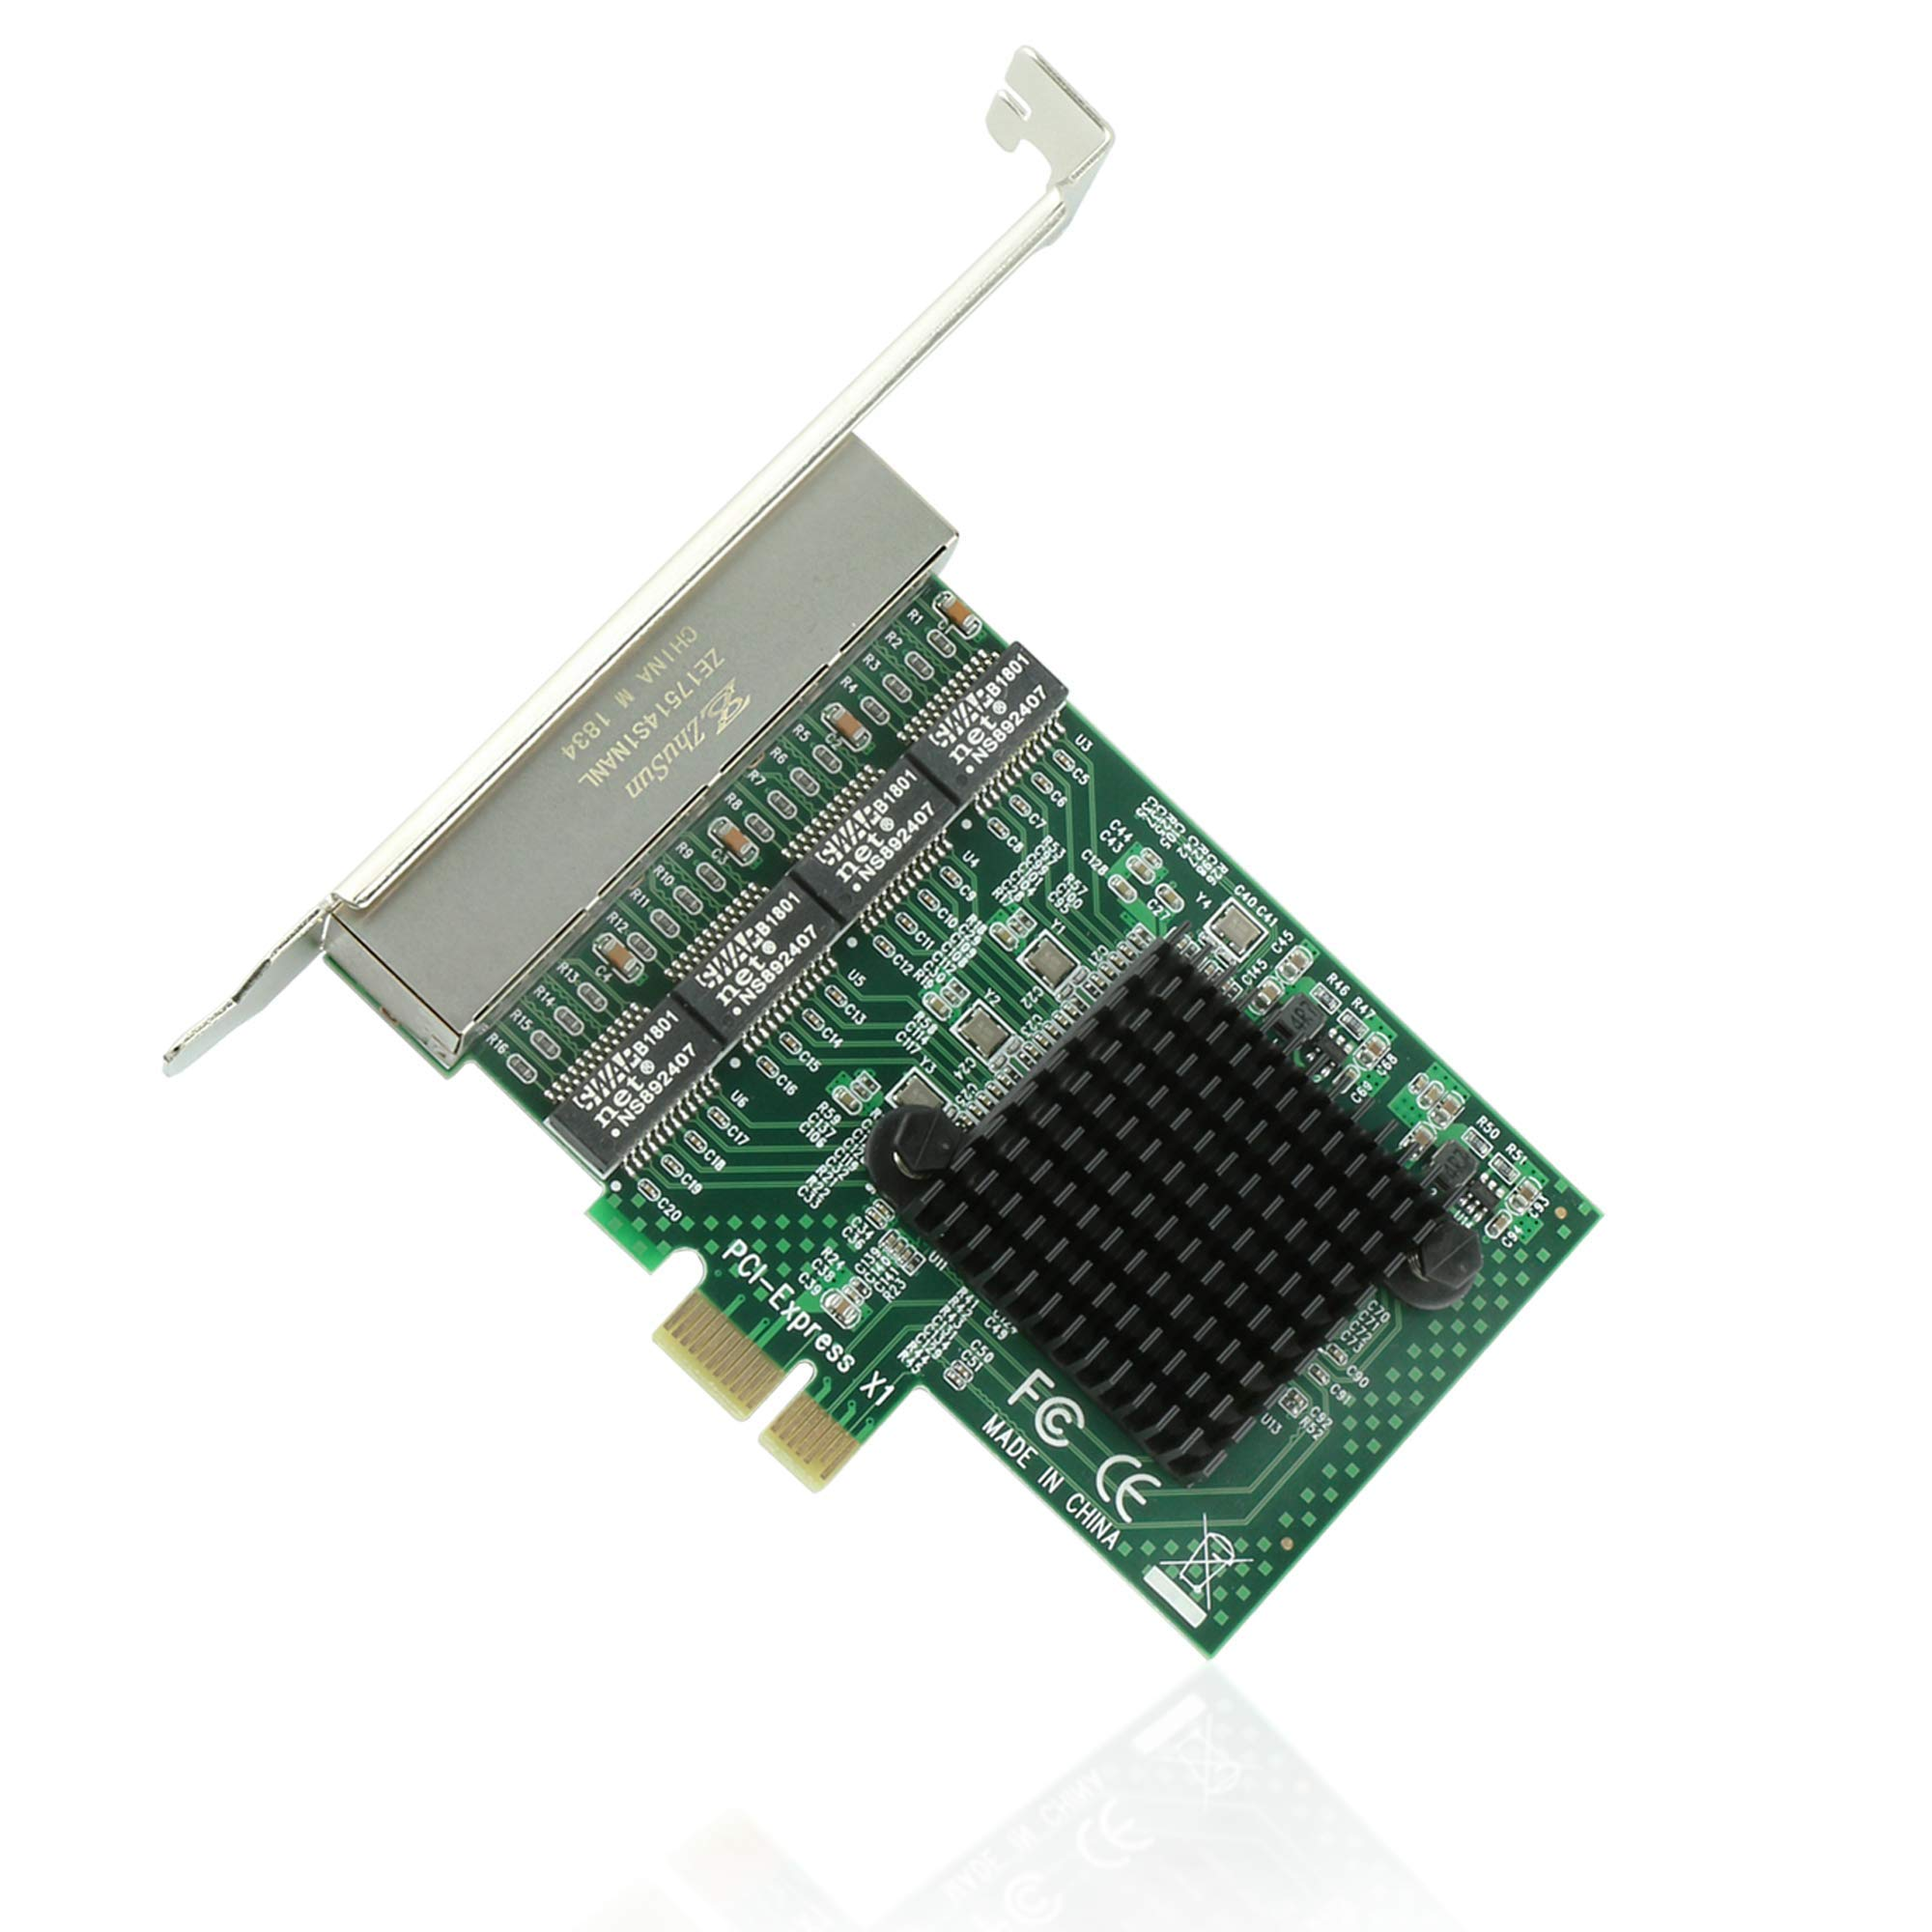 Ziyituod Network Card, RJ45 4 Port Gigabit Ethernet Card, PCI Express Network Interface Card, 10/100/1000Mbps, 4 Port with Realtek RTL8111 Chipset, Support Windows XP/7/8/10,Linux,NAS(No Software) by Ziyituod